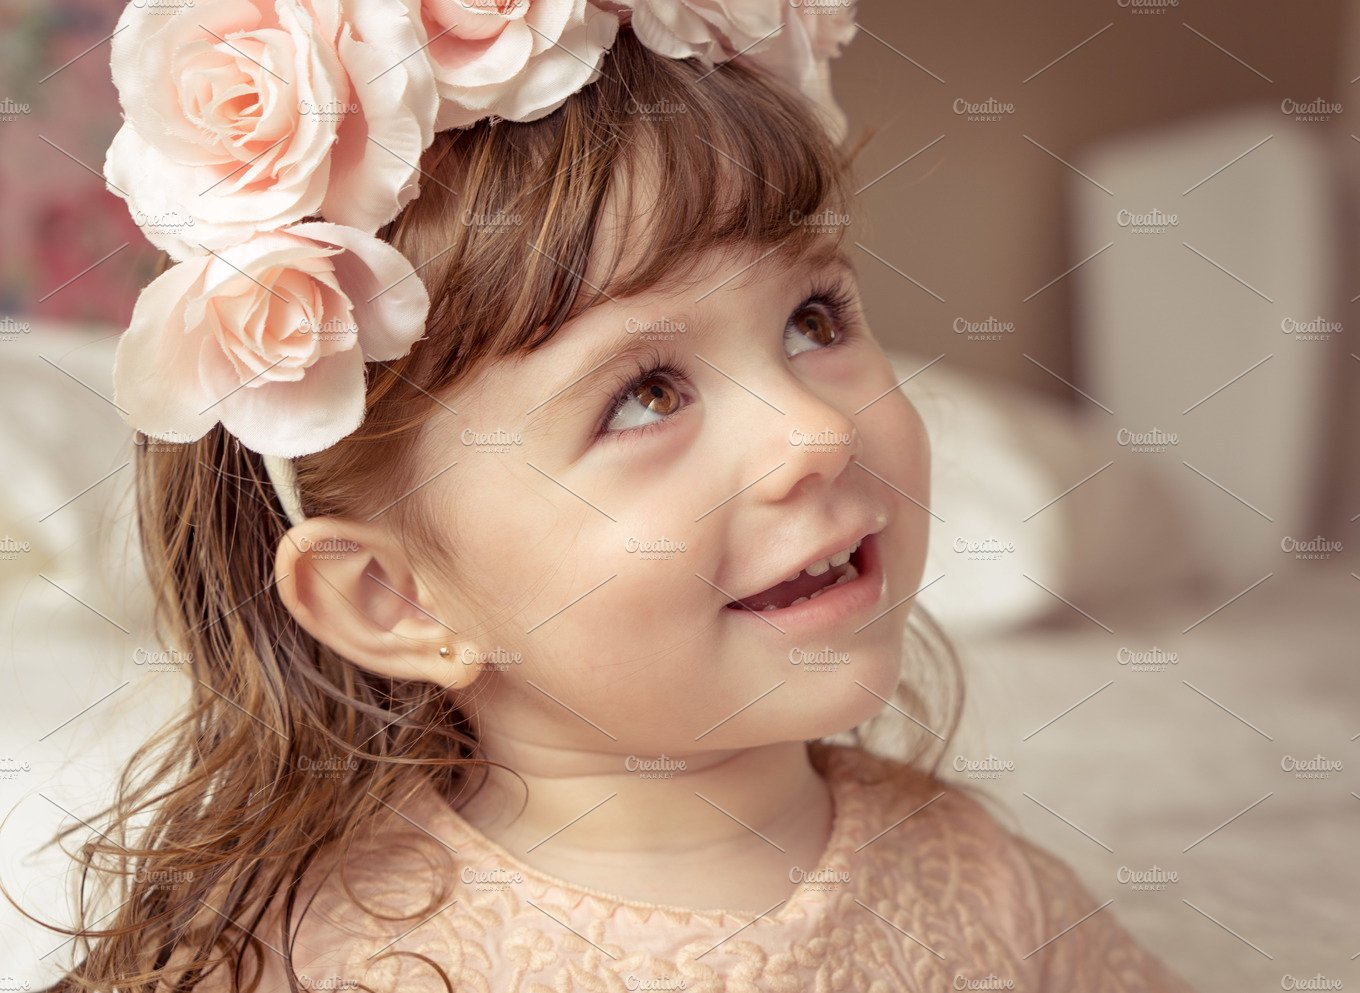 Boho little girl with flower crown beauty fashion photos boho little girl with flower crown beauty fashion photos creative market izmirmasajfo Gallery